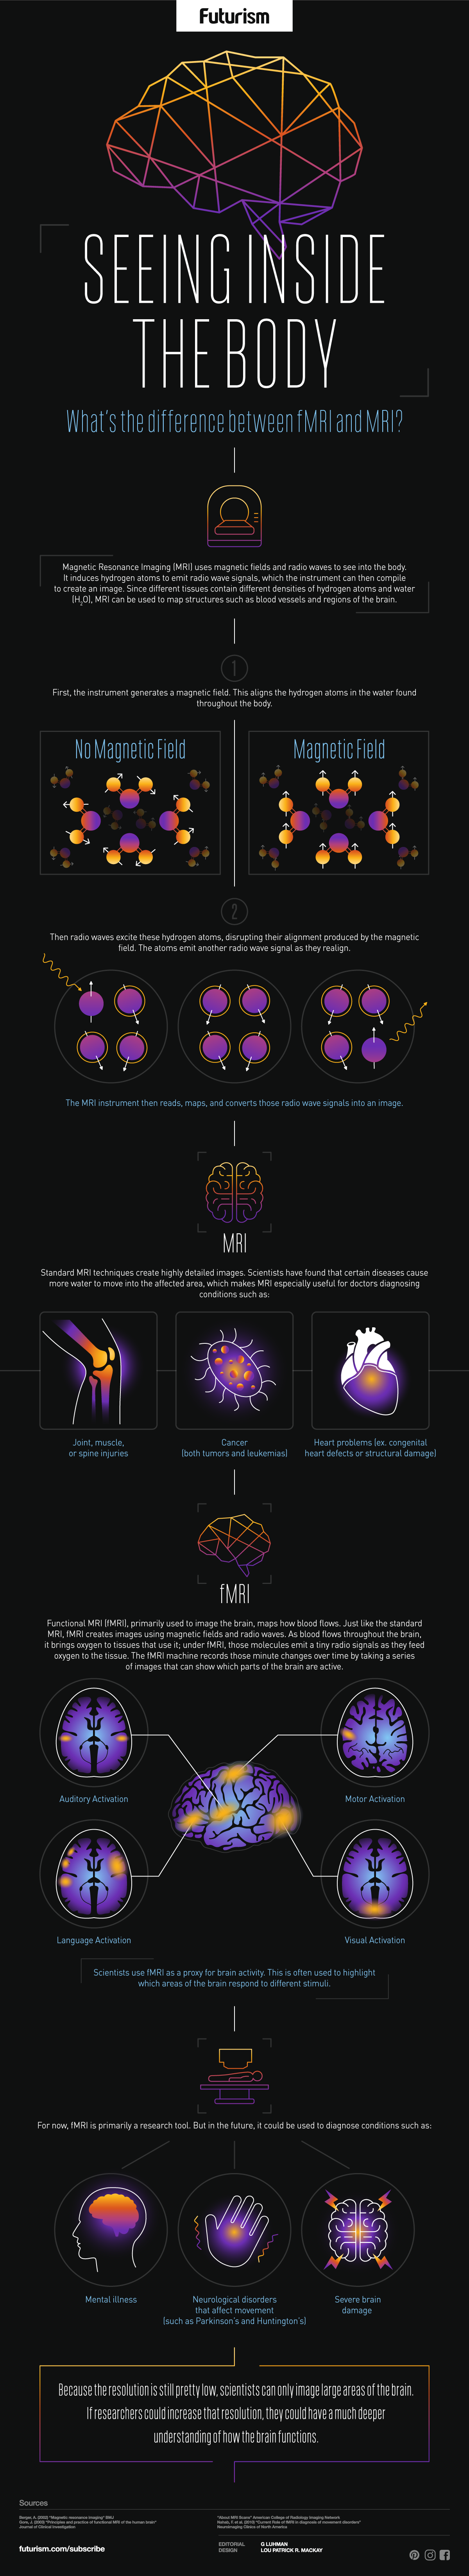 Inside the Human Body: How MRI and fMRI Works - Infographic